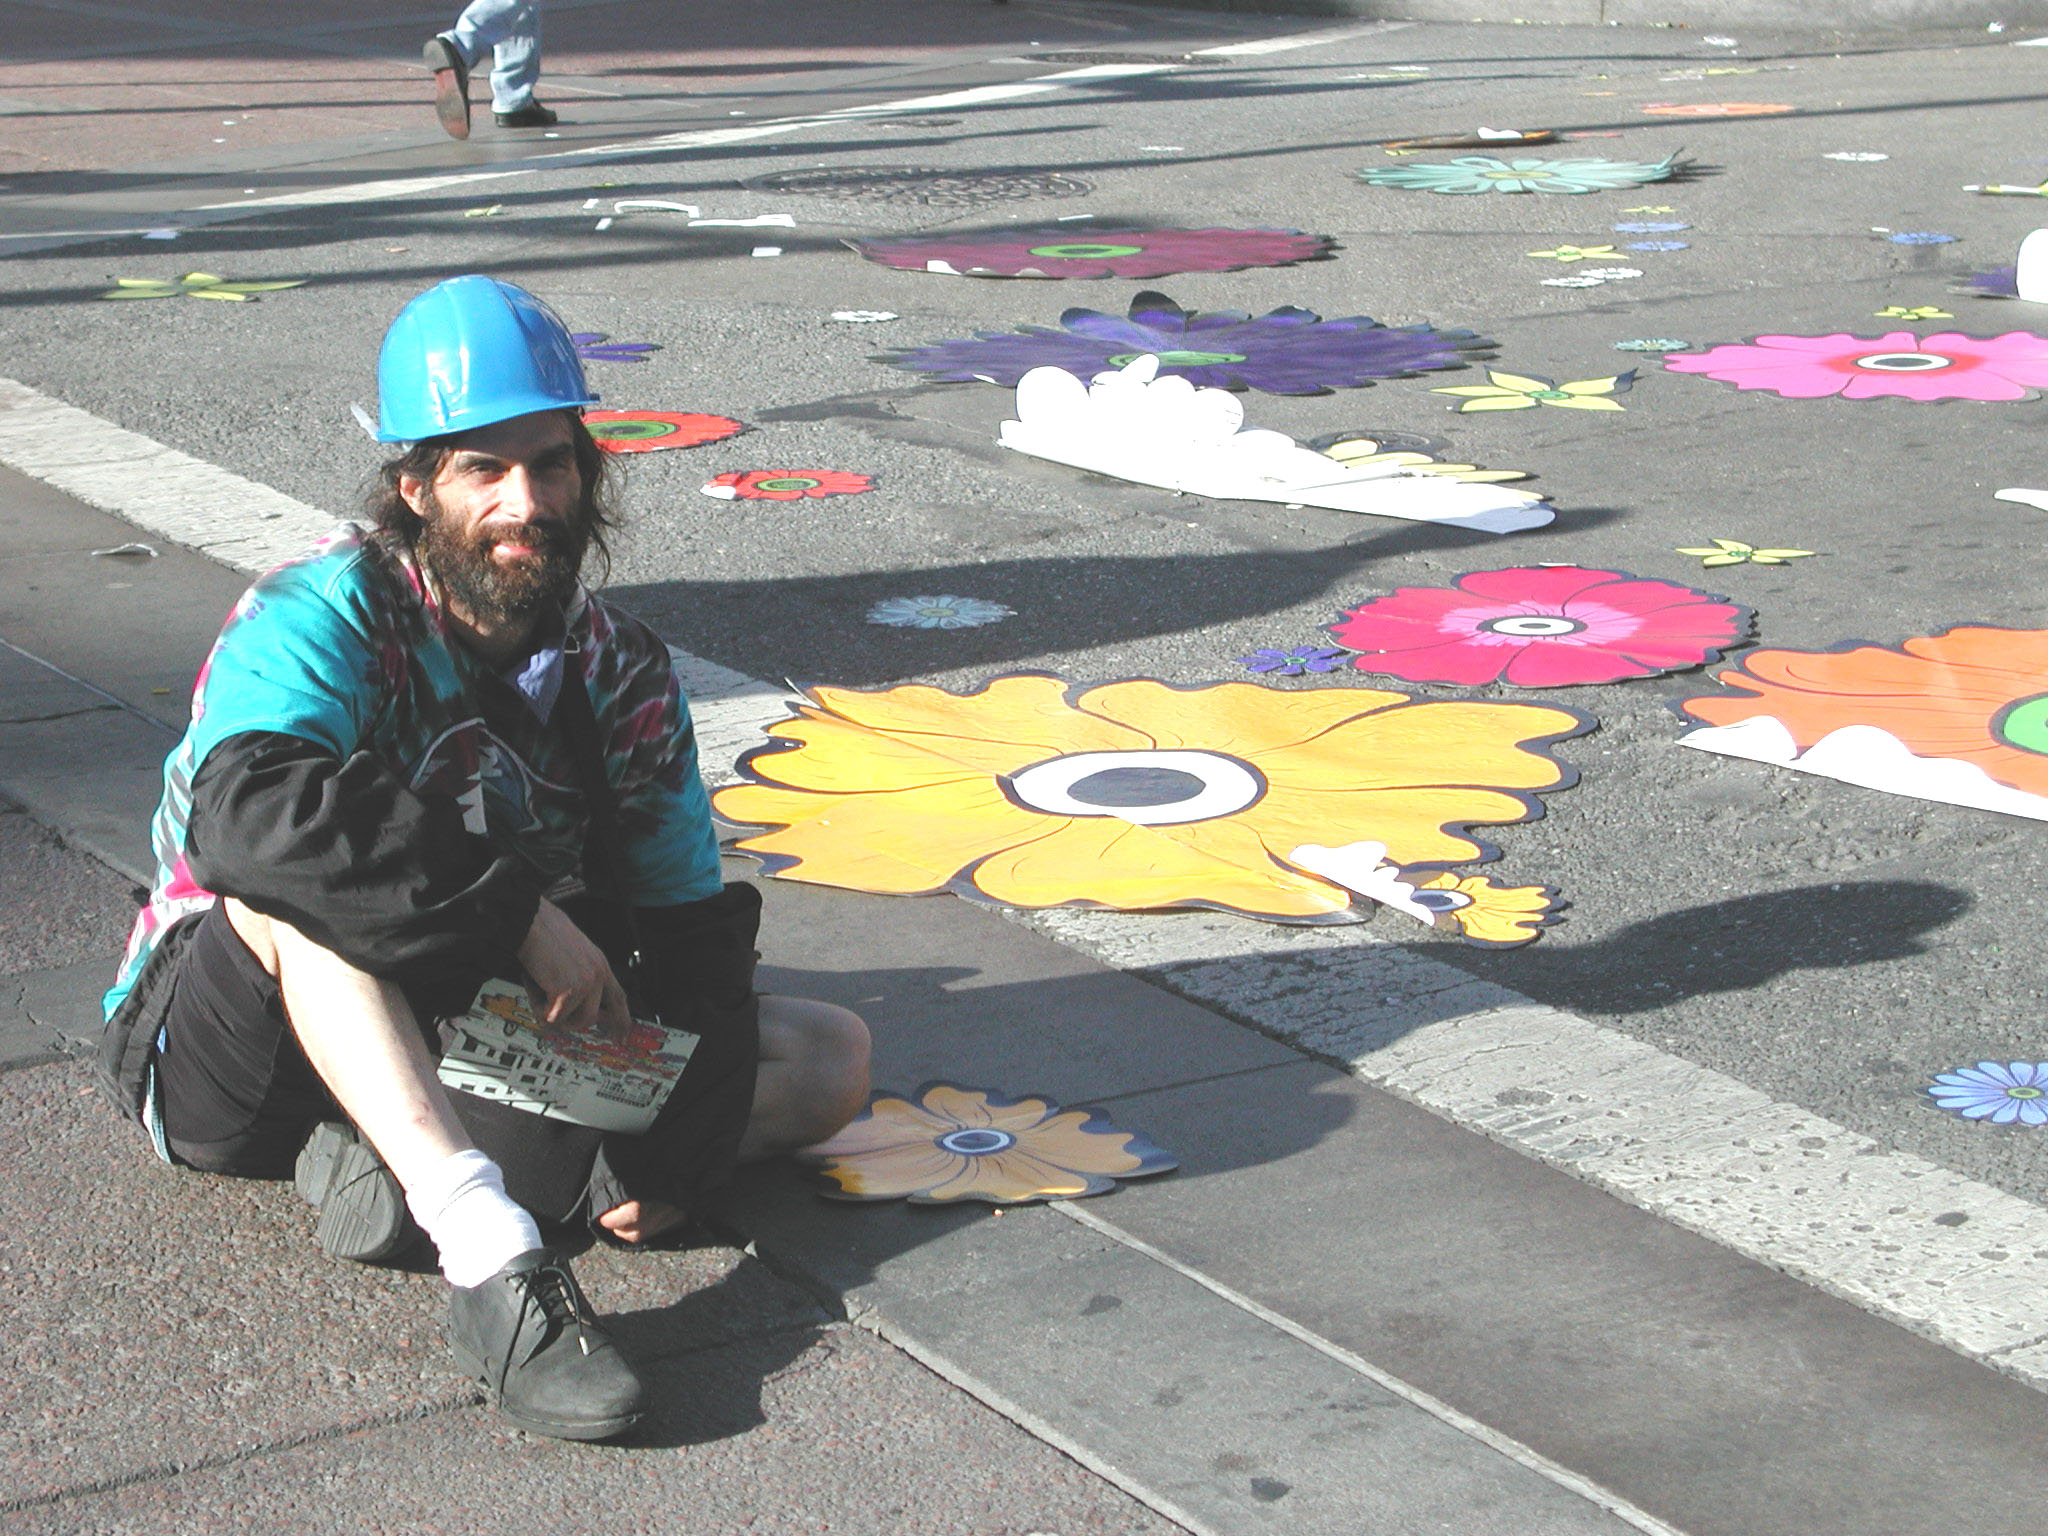 man in hard hat on ground with flowers holding card 2.jpg